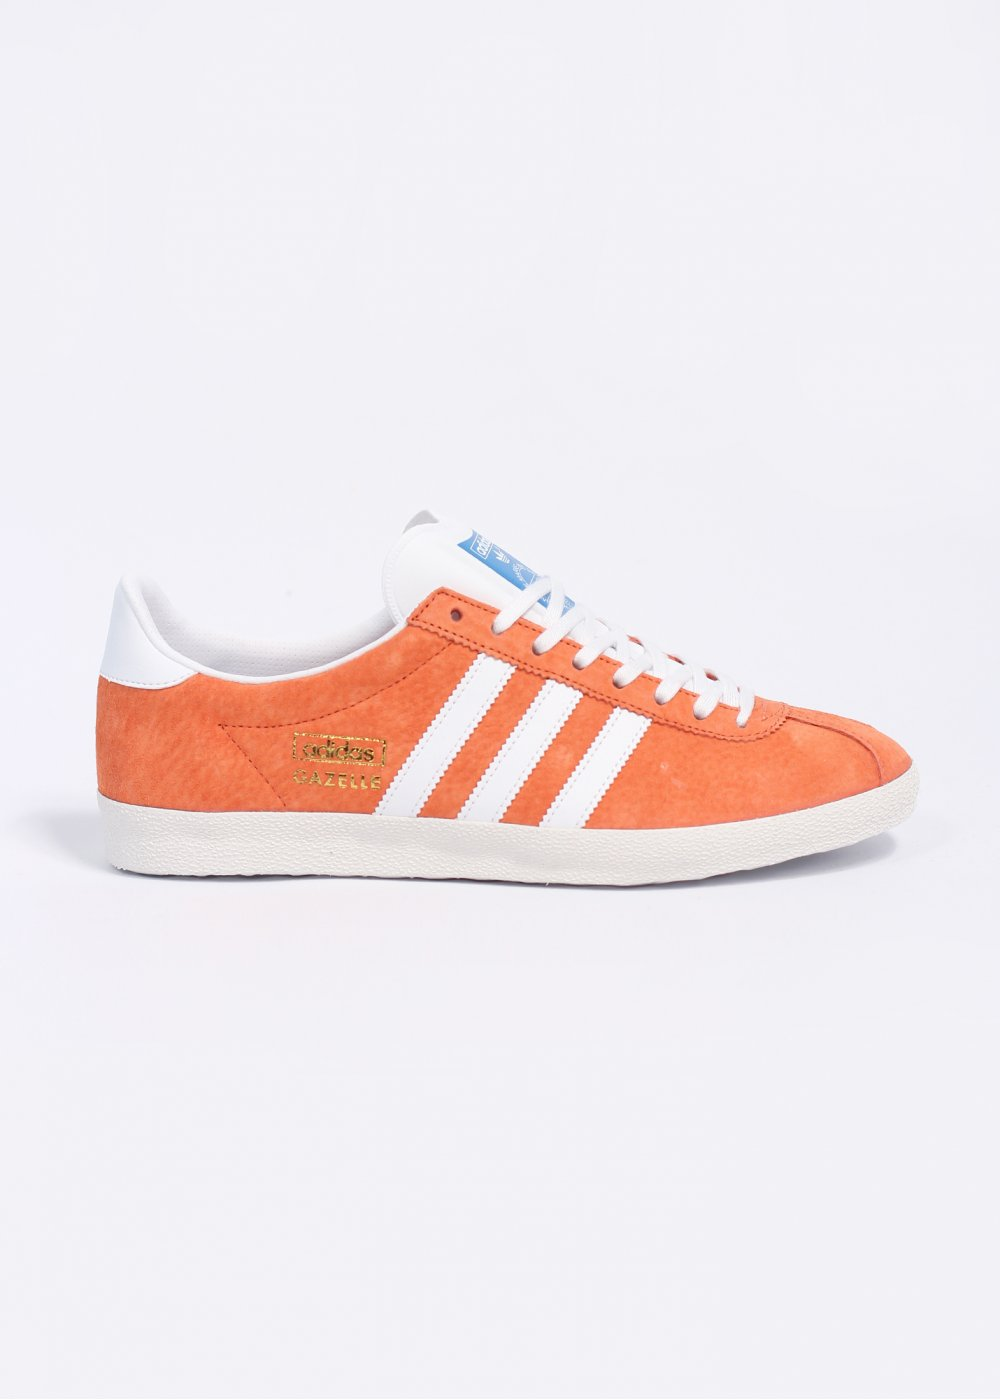 2c247b443e3 adidas Originals Gazelle OG Trainers - Tropic Melon